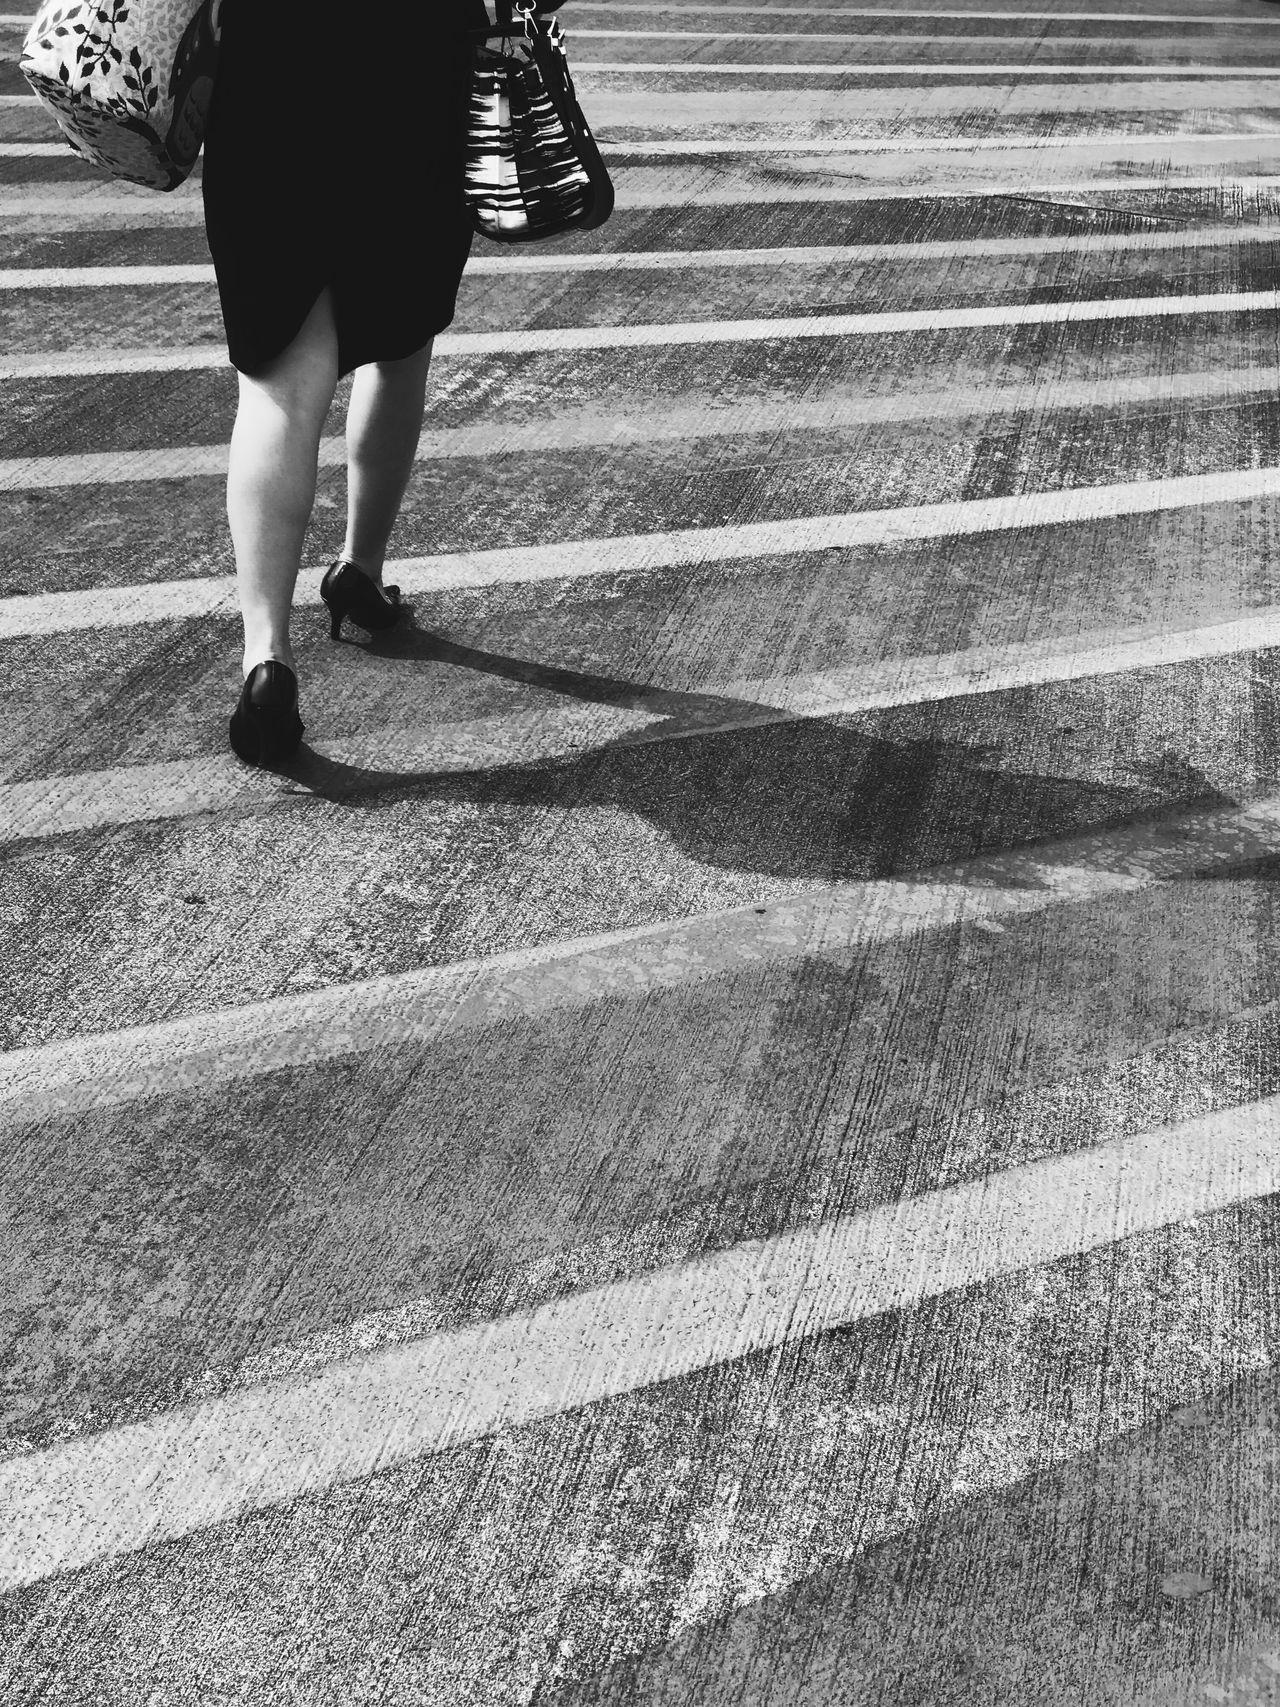 Bareng bayangan Walking Low Section One Person Real People Rear View Human Leg Outdoors Lifestyles Day Women Adult People Adults Only The Street Photographer - 2017 EyeEm Awards Blackandwhite Blackandwhite Photography Black And White